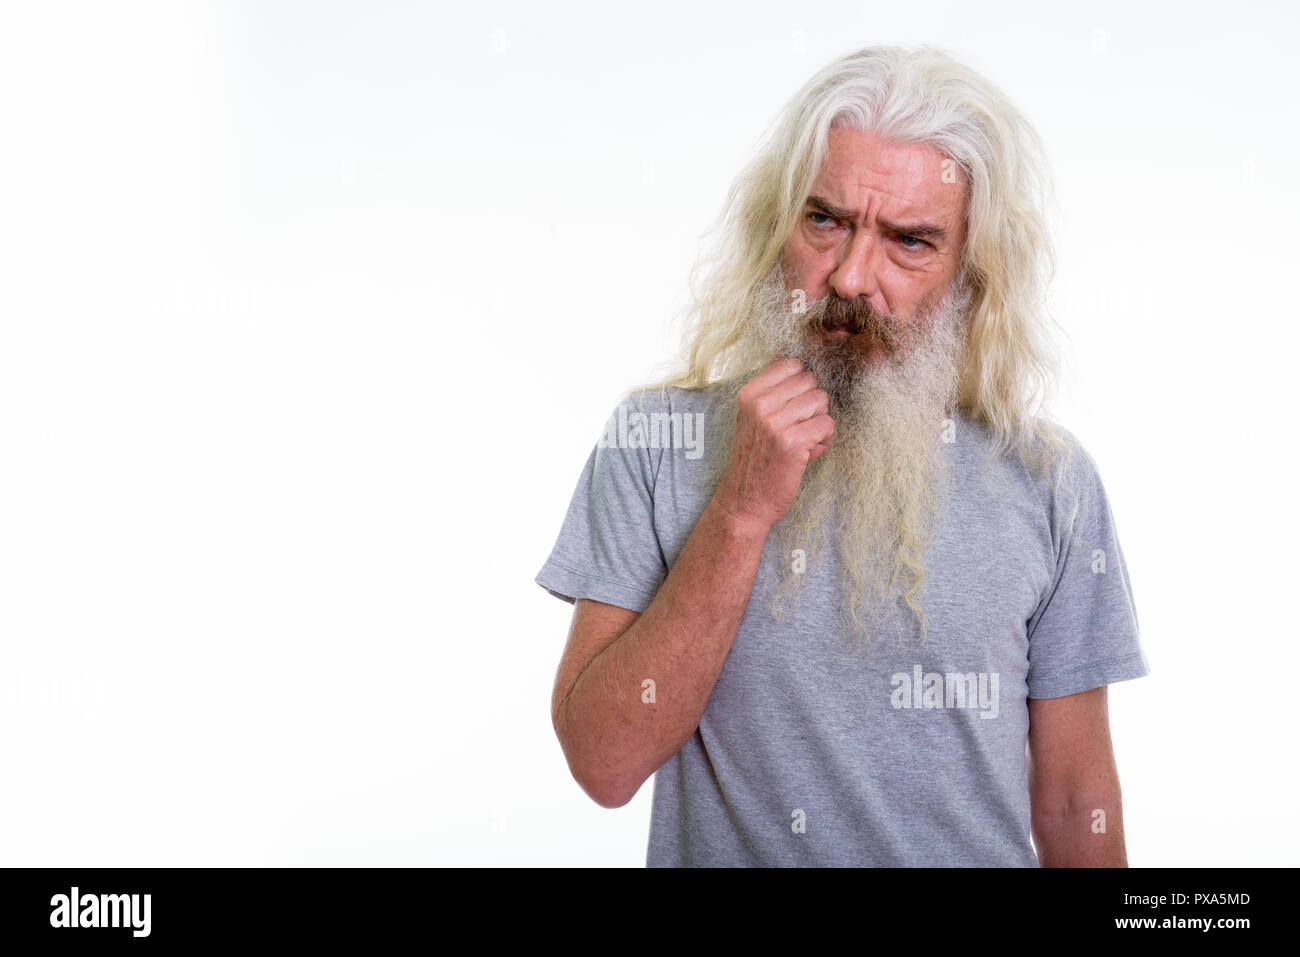 Studio shot of senior bearded man thinking while looking sad - Stock Image